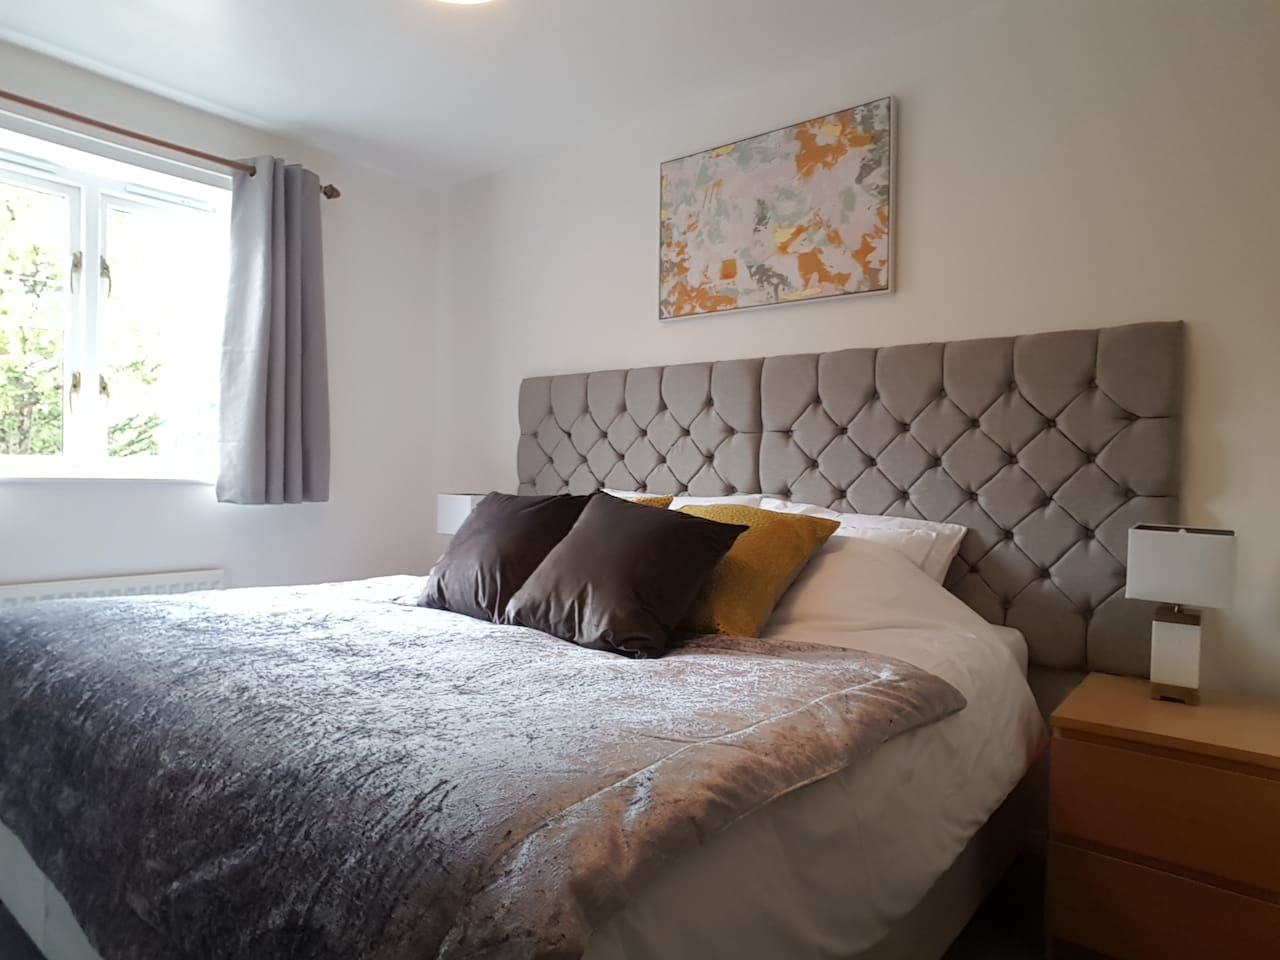 This is a beautiful room freshly decorated it has a  comfortable super king size bed. USB charging points are built into sockets either side of the bed. The bedroom is totally private and lockable. Suitable if you are staying for leisure or work.